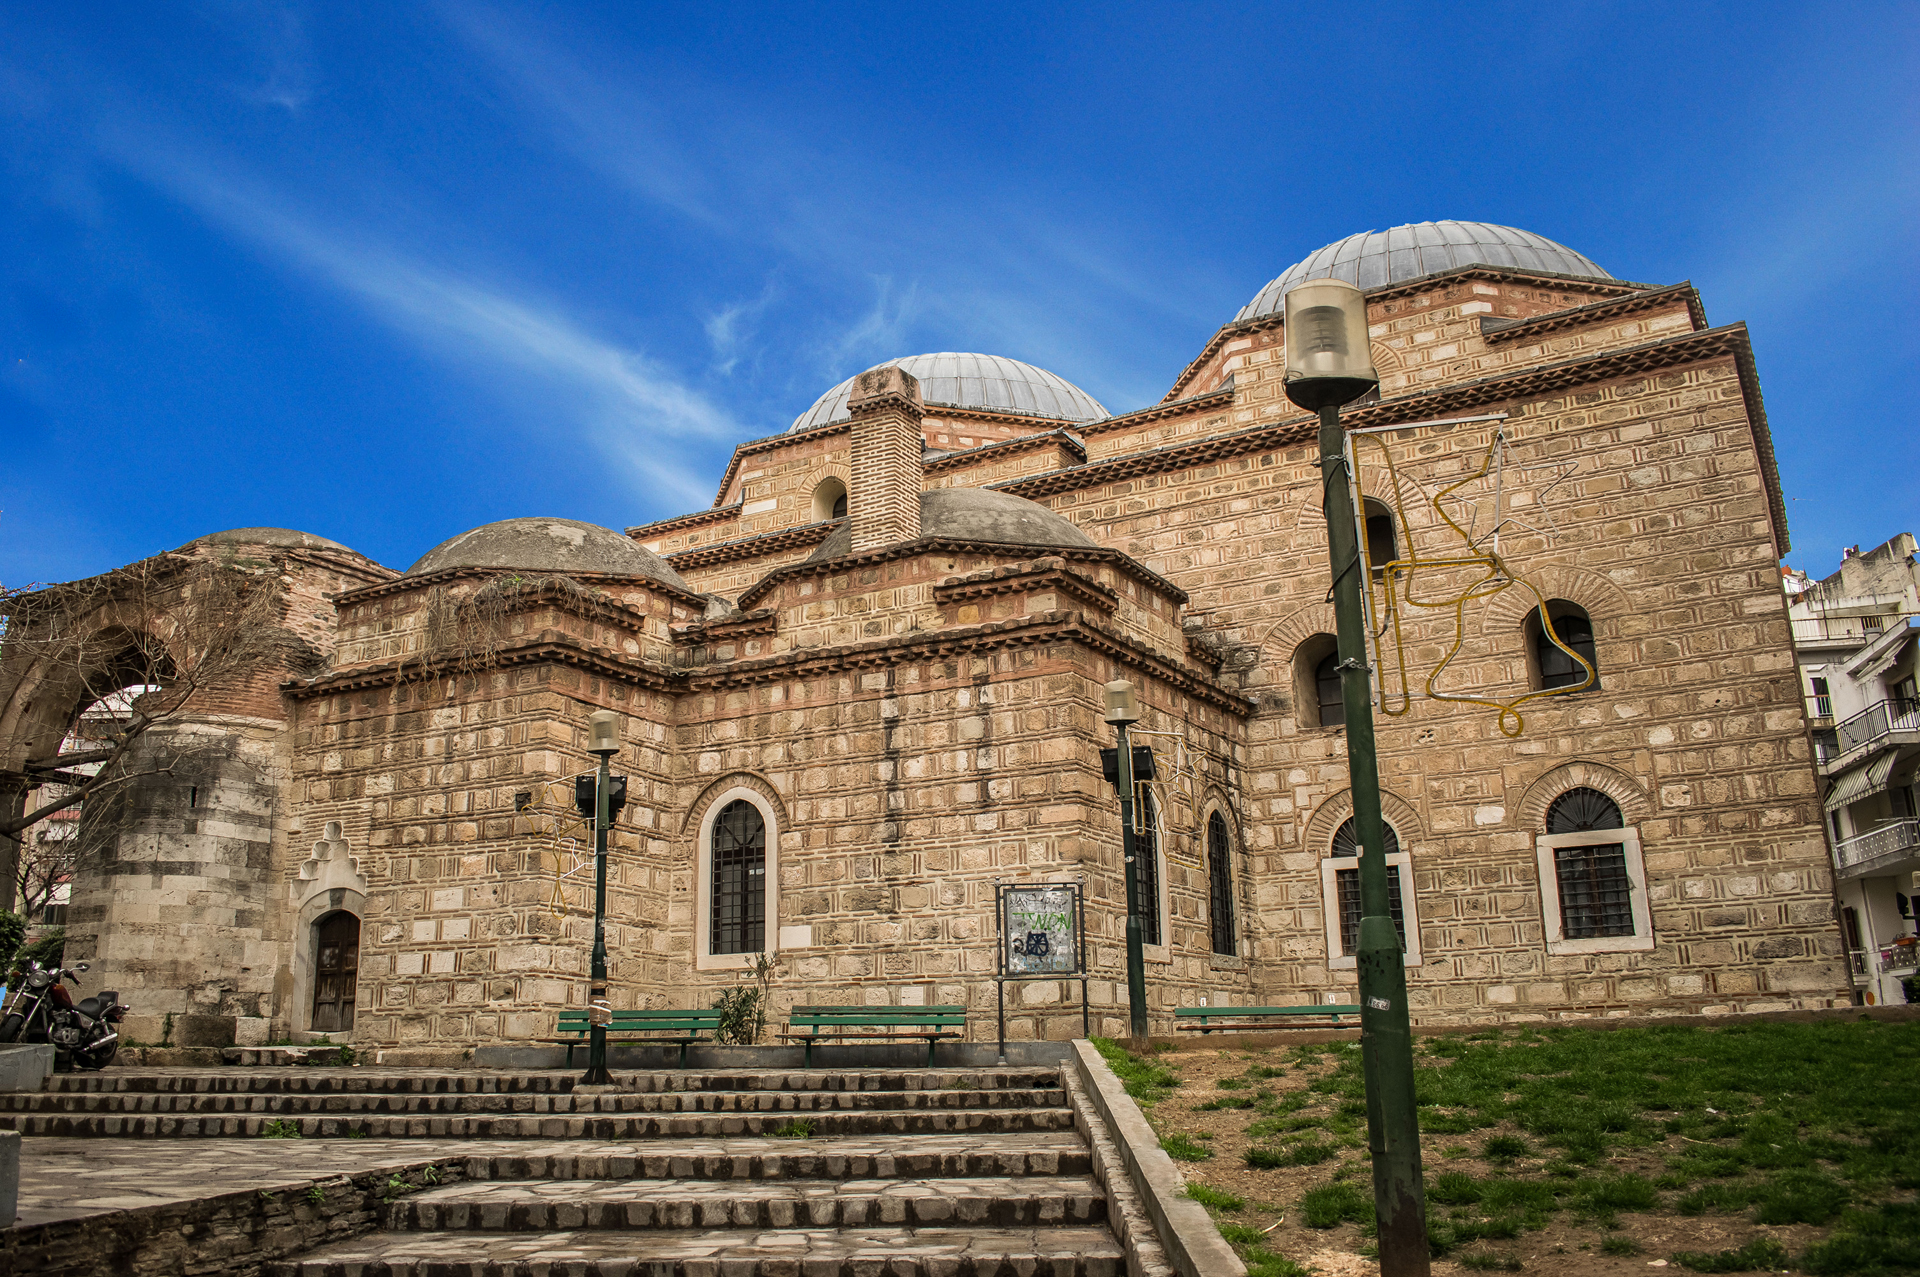 Alaca Imaret Mosque found in Thessaloniki, Greece